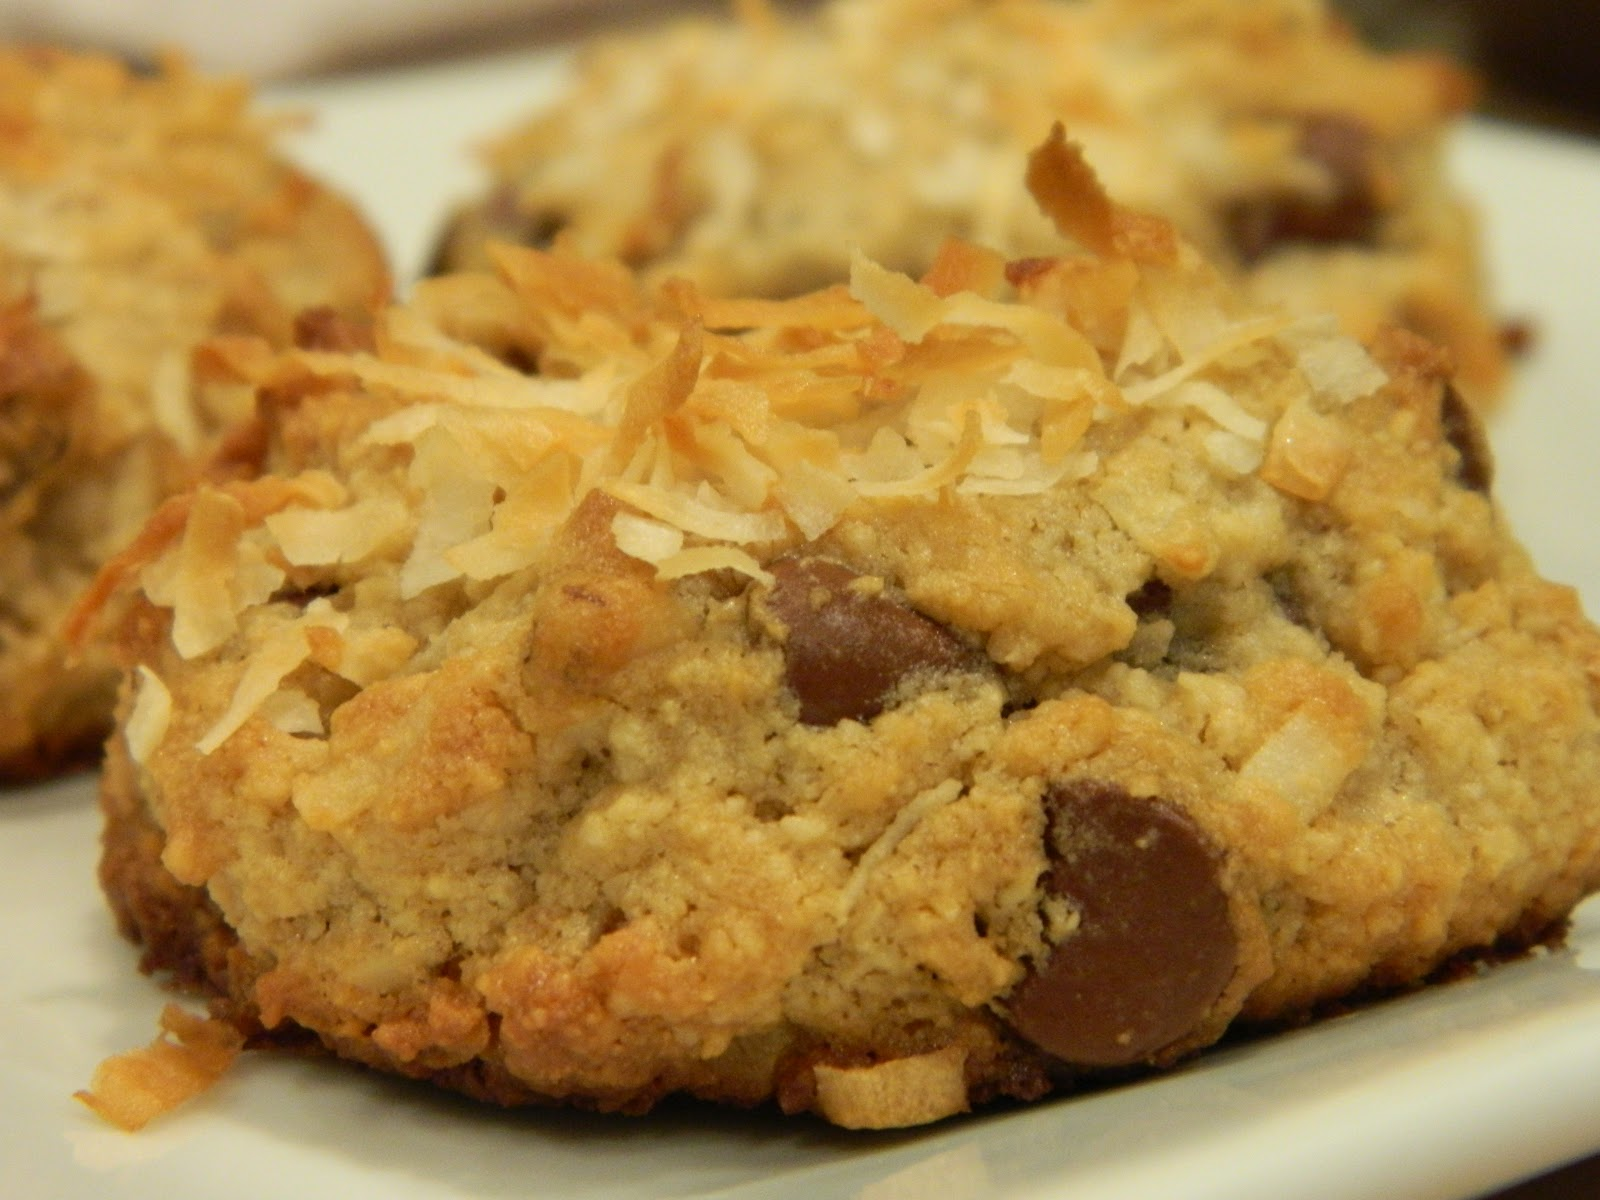 Primal Bites: Grain Free Chocolate Chip Walnut Cookies with Coconut